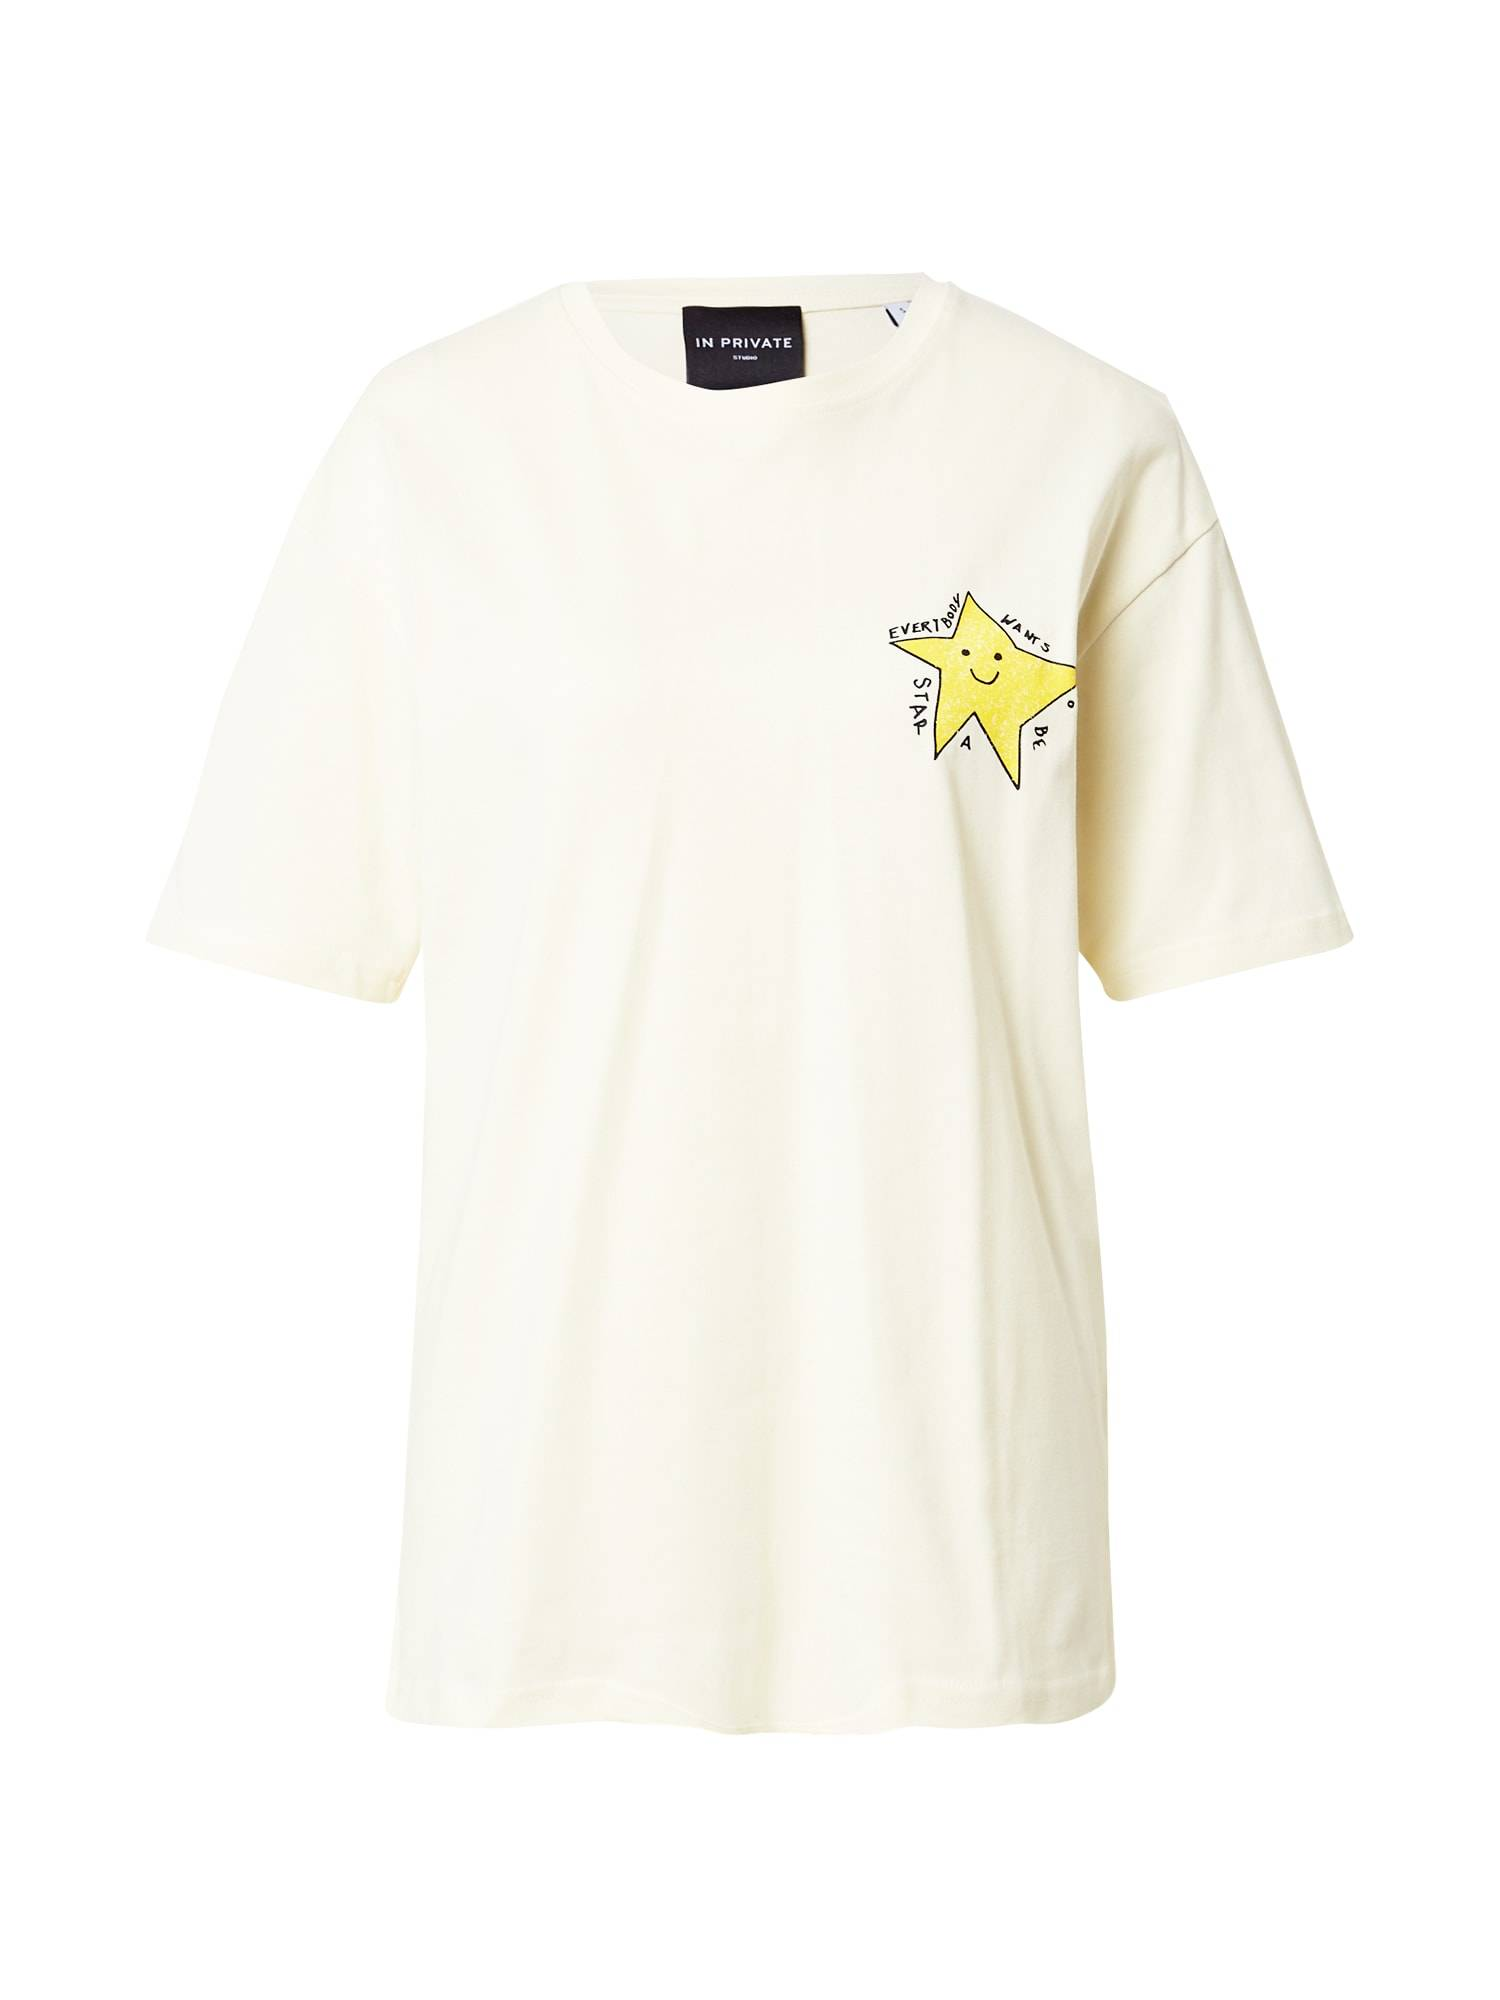 IN PRIVATE Studio T-shirt 'LONELY STAR'  - Blanc - Taille: XL - female